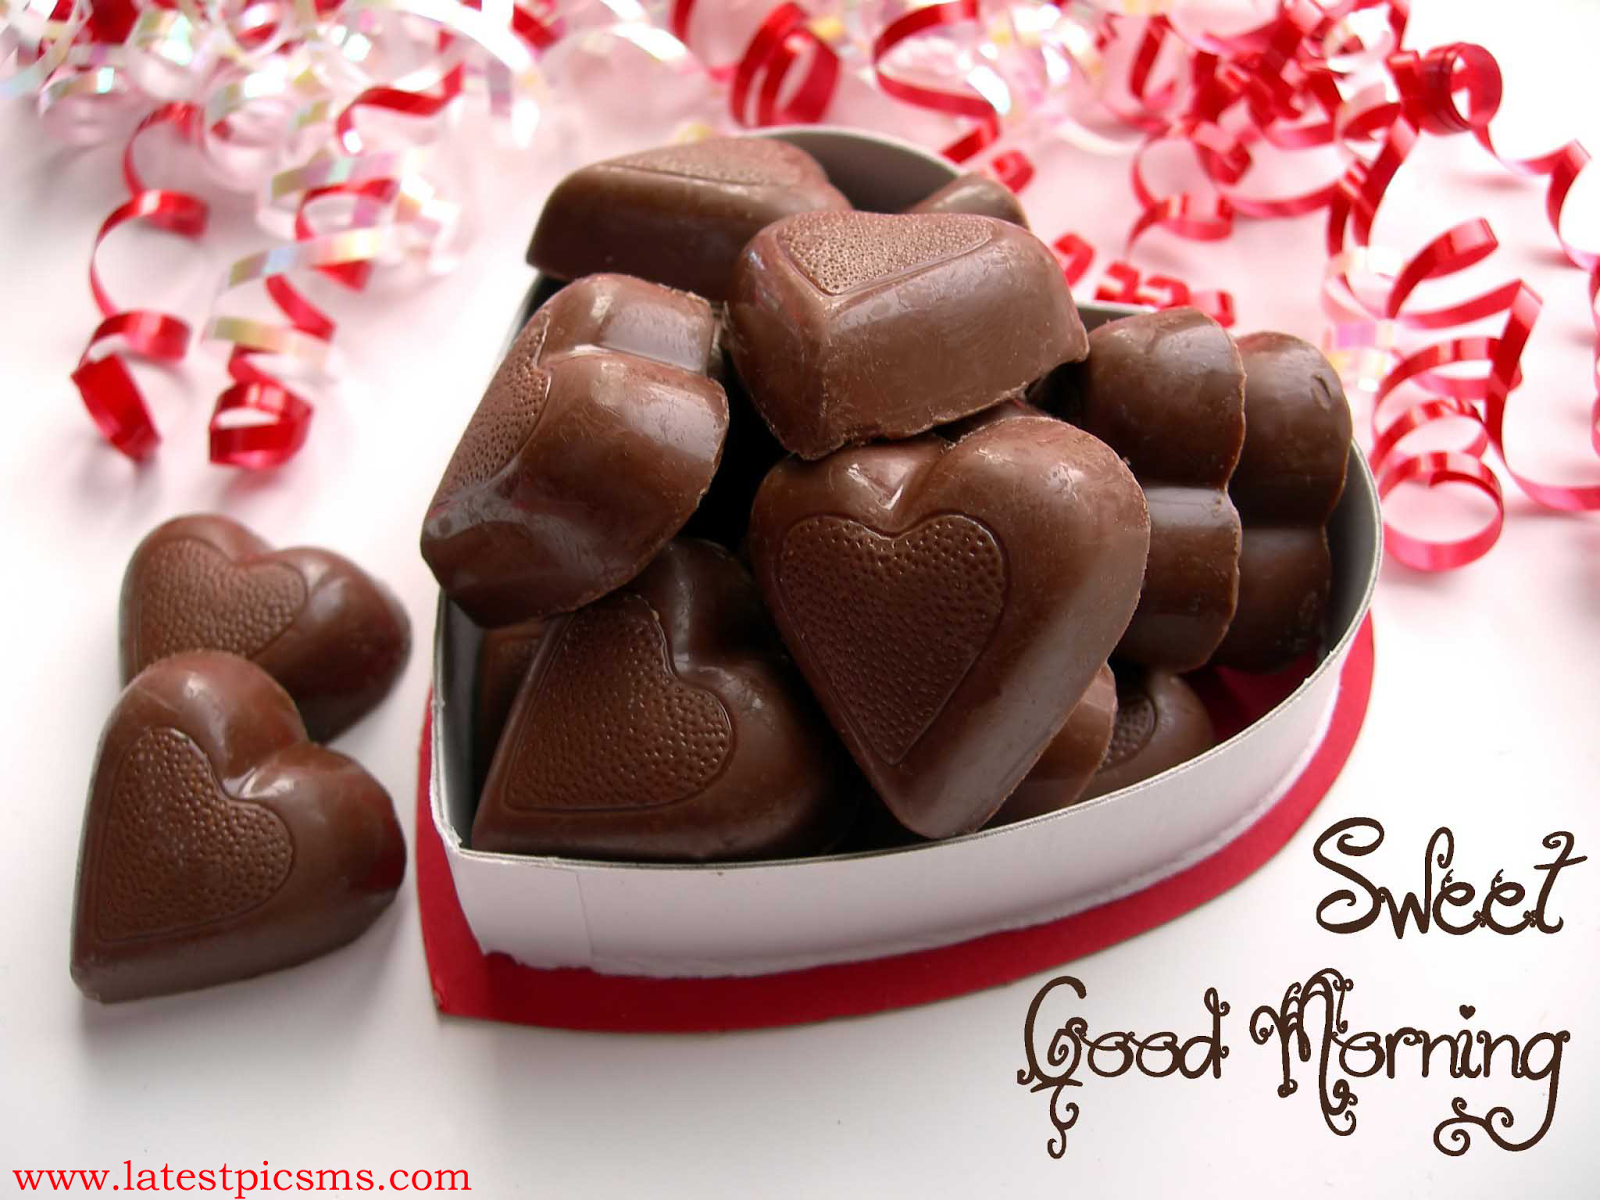 latest good morning wishes with sweets and choco image hd%2Bwallpaper free%2Bdownload - A Lovely and Fresh Good Morning HD Picture Messages for Whatsapp & Fb